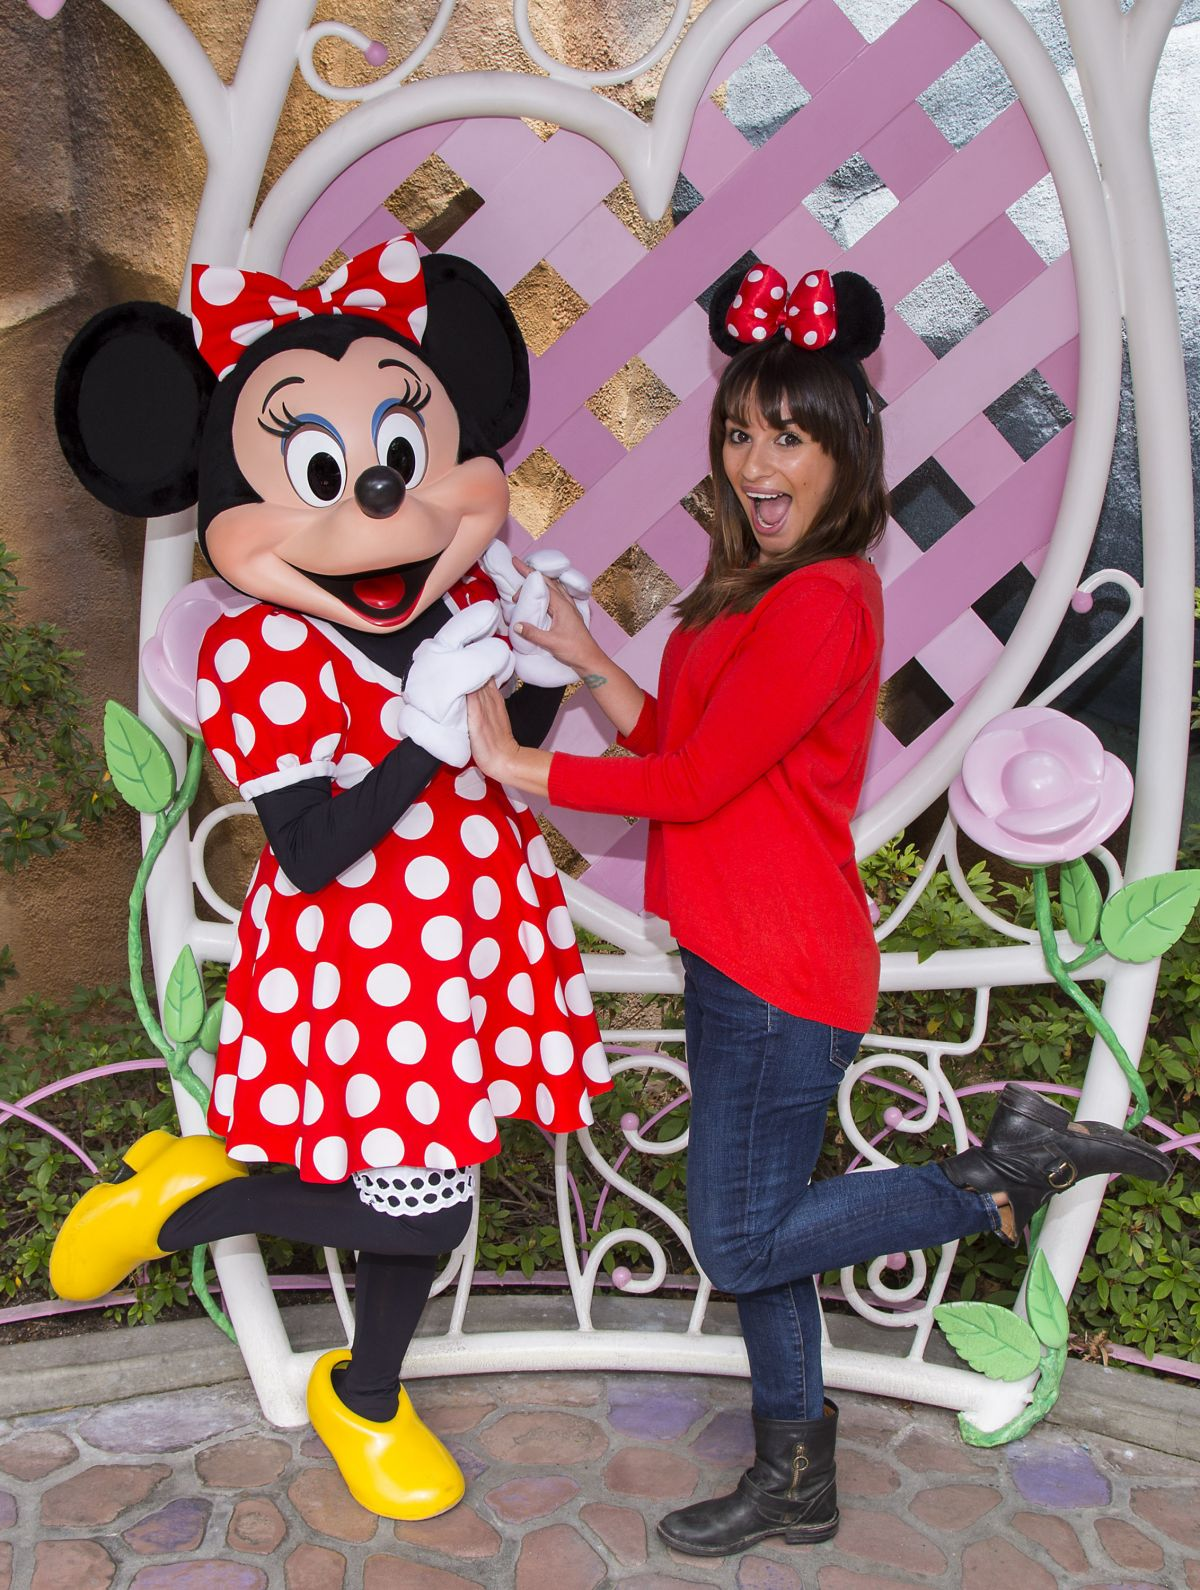 LEA MICHELE at Mickey